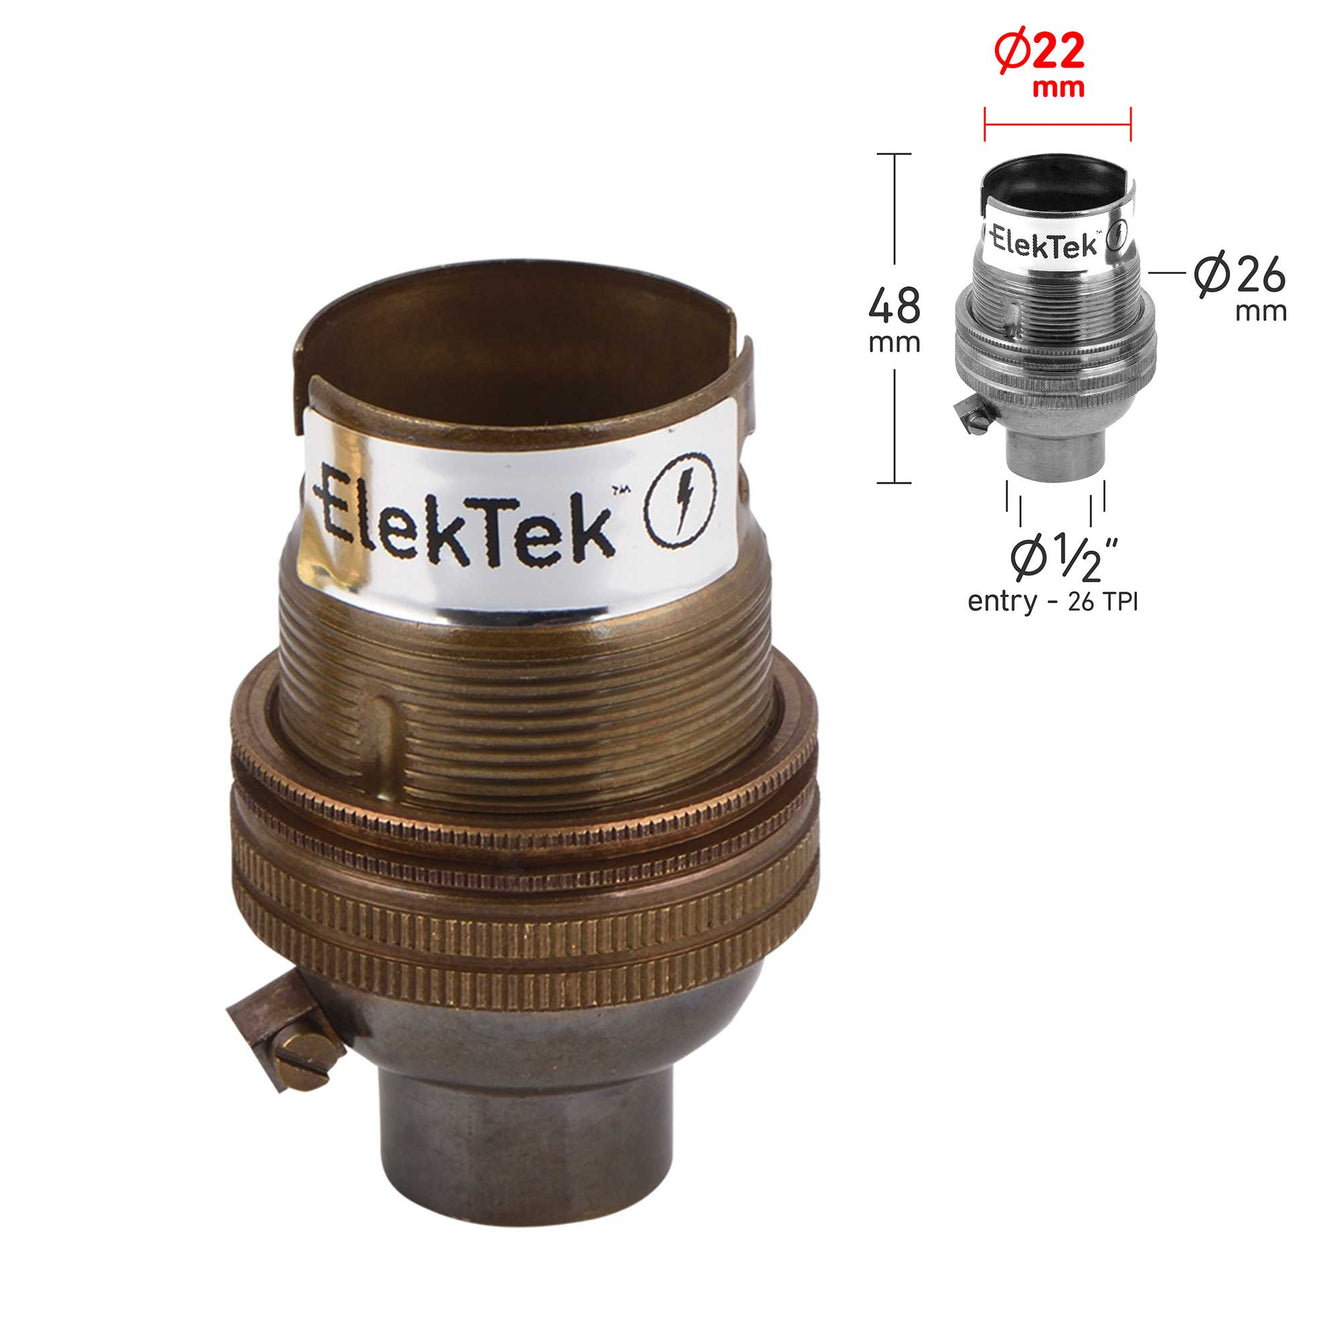 ElekTek Lamp Holder Bayonet Cap B22 Unswitched 10mm or Half Inch Entry With Shade Ring Solid Brass - Buy It Better